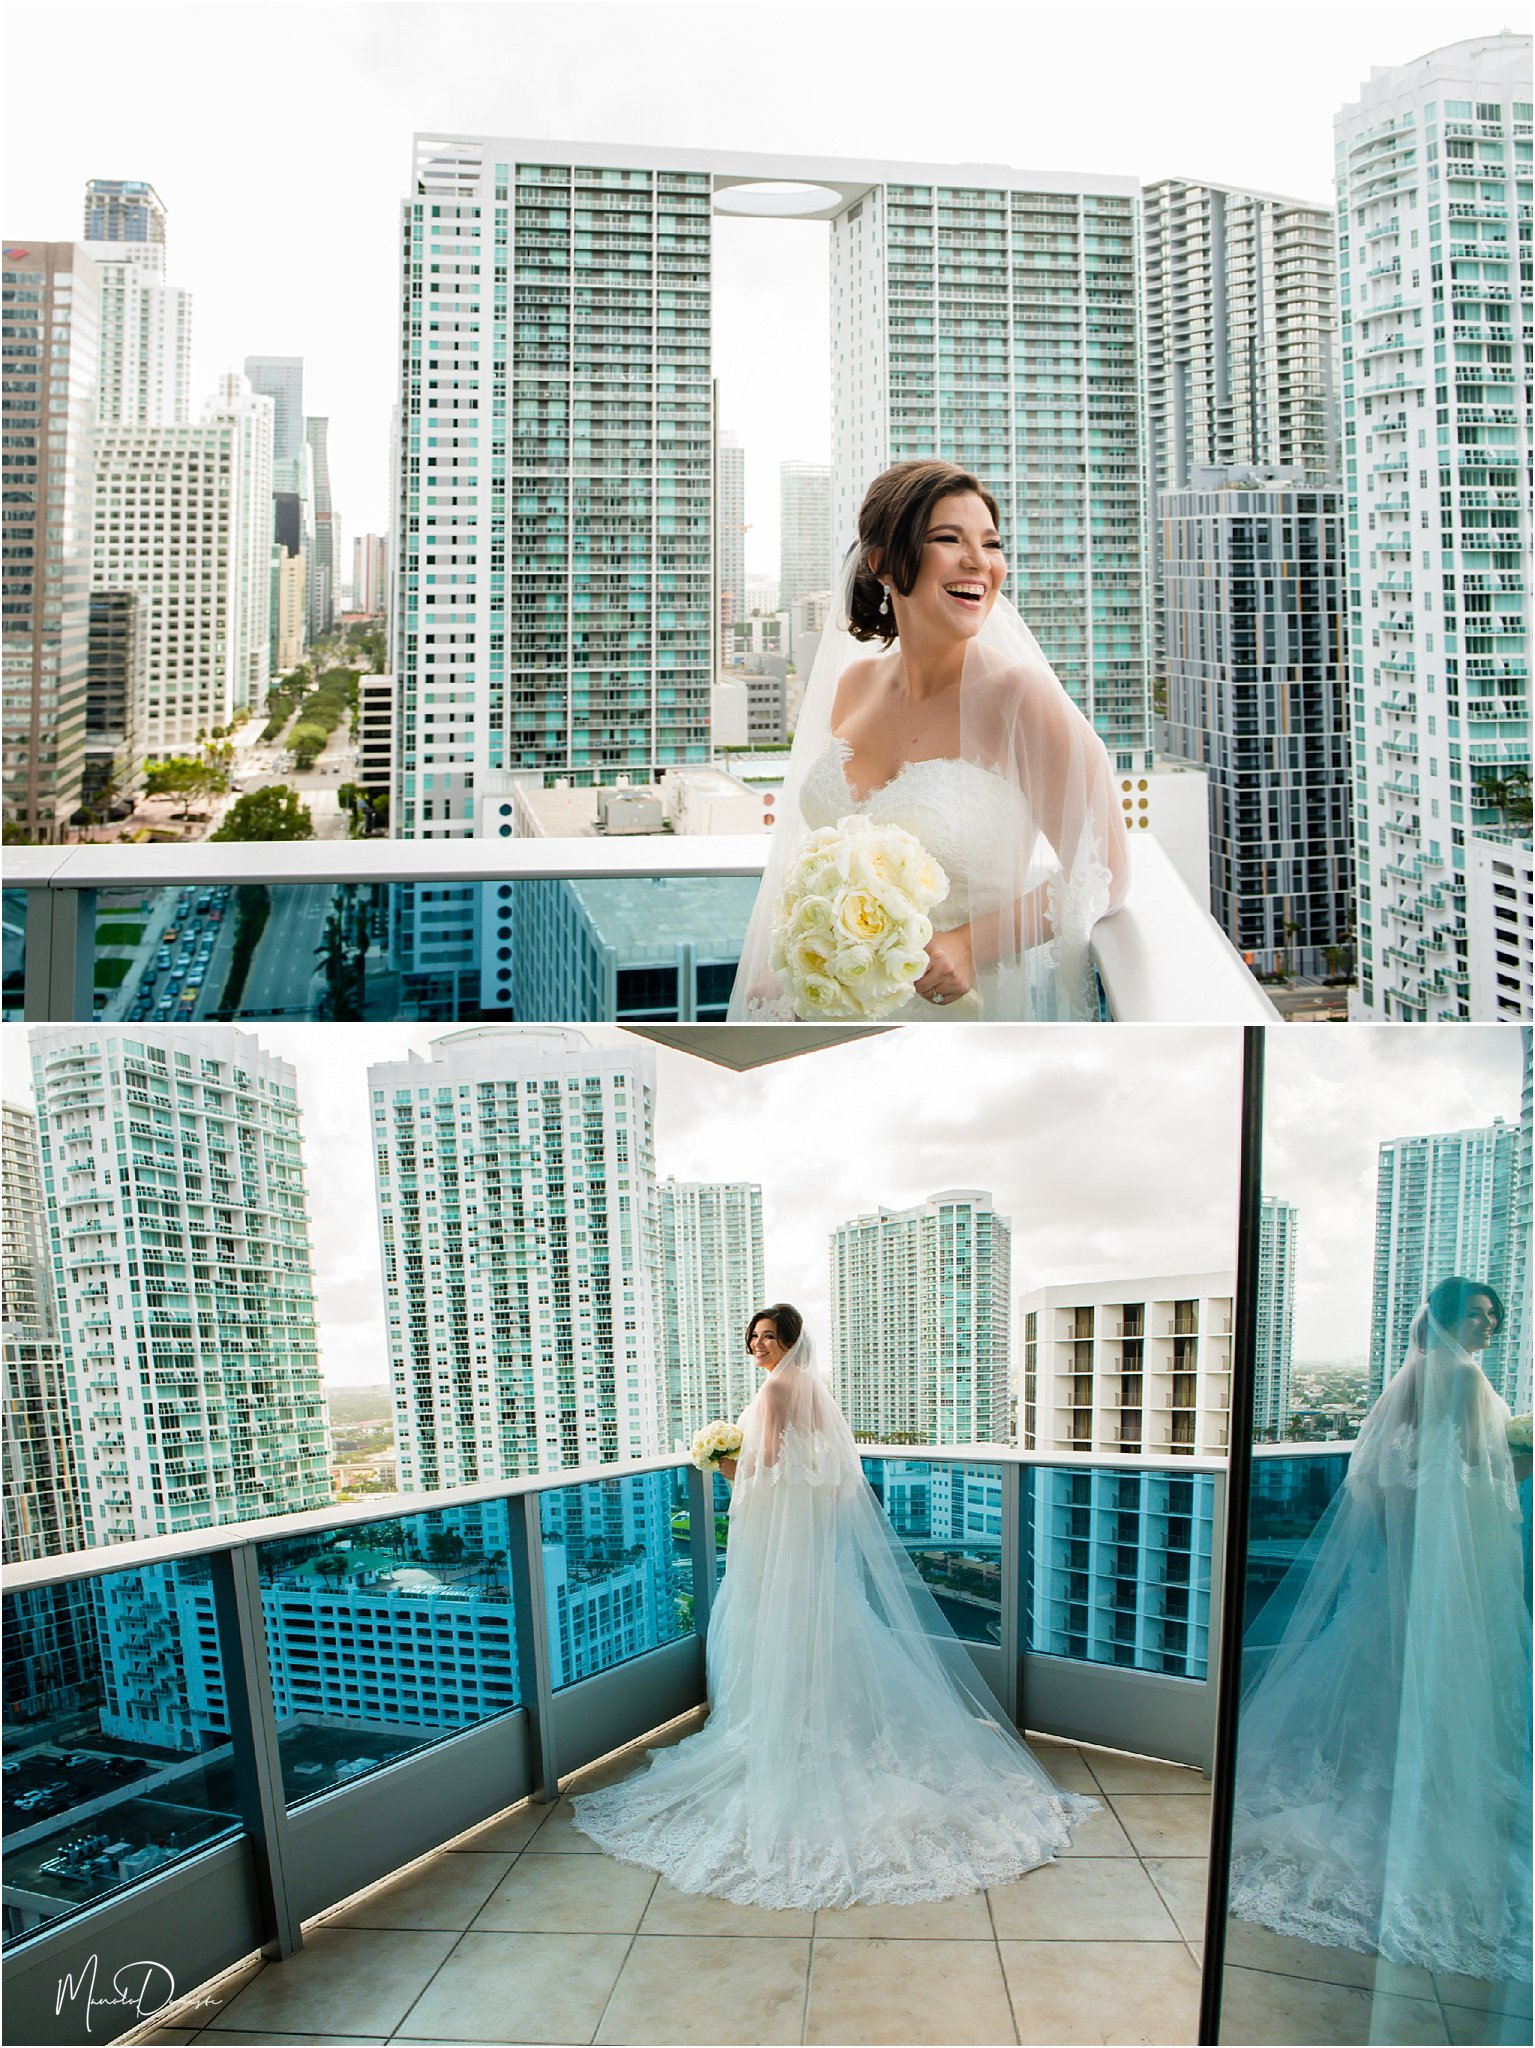 0084_ManoloDoreste_InFocusStudios_Wedding_Family_Photography_Miami_MiamiPhotographer.jpg